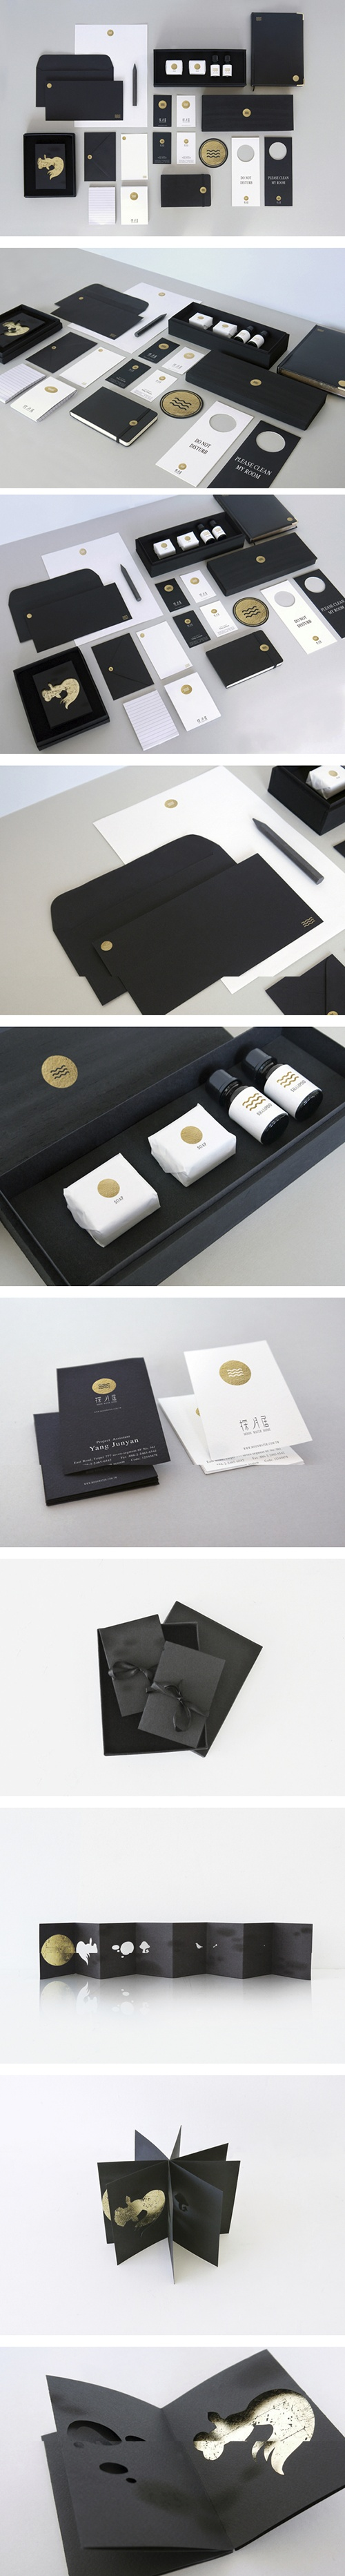 MOON WATER HOME HOTEL | #stationary #corporate #design #corporatedesign #logo…